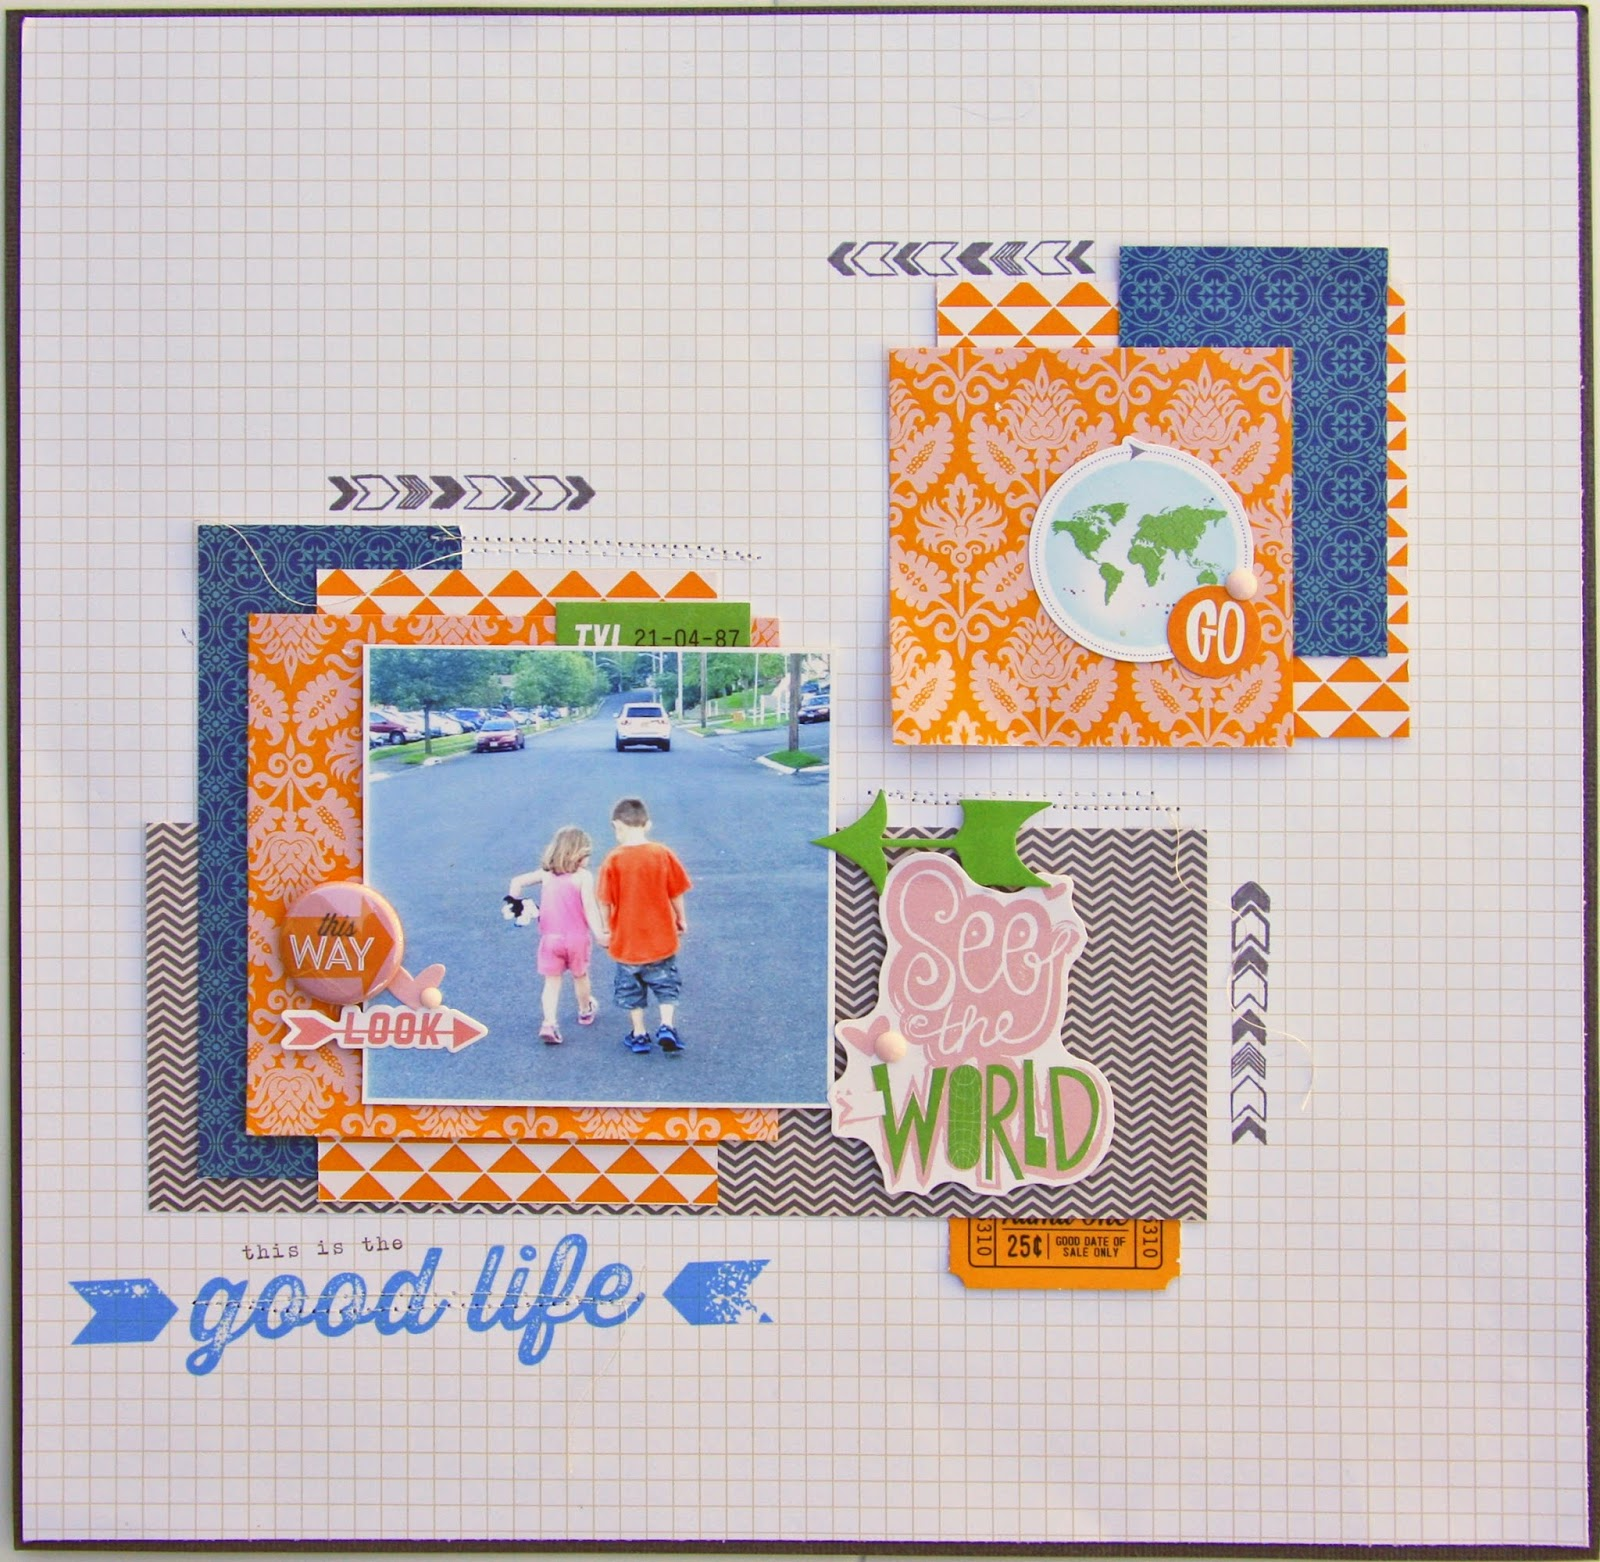 http://lynnkopas.blogspot.com/2014/03/a-new-sketch-and-new-layout.html